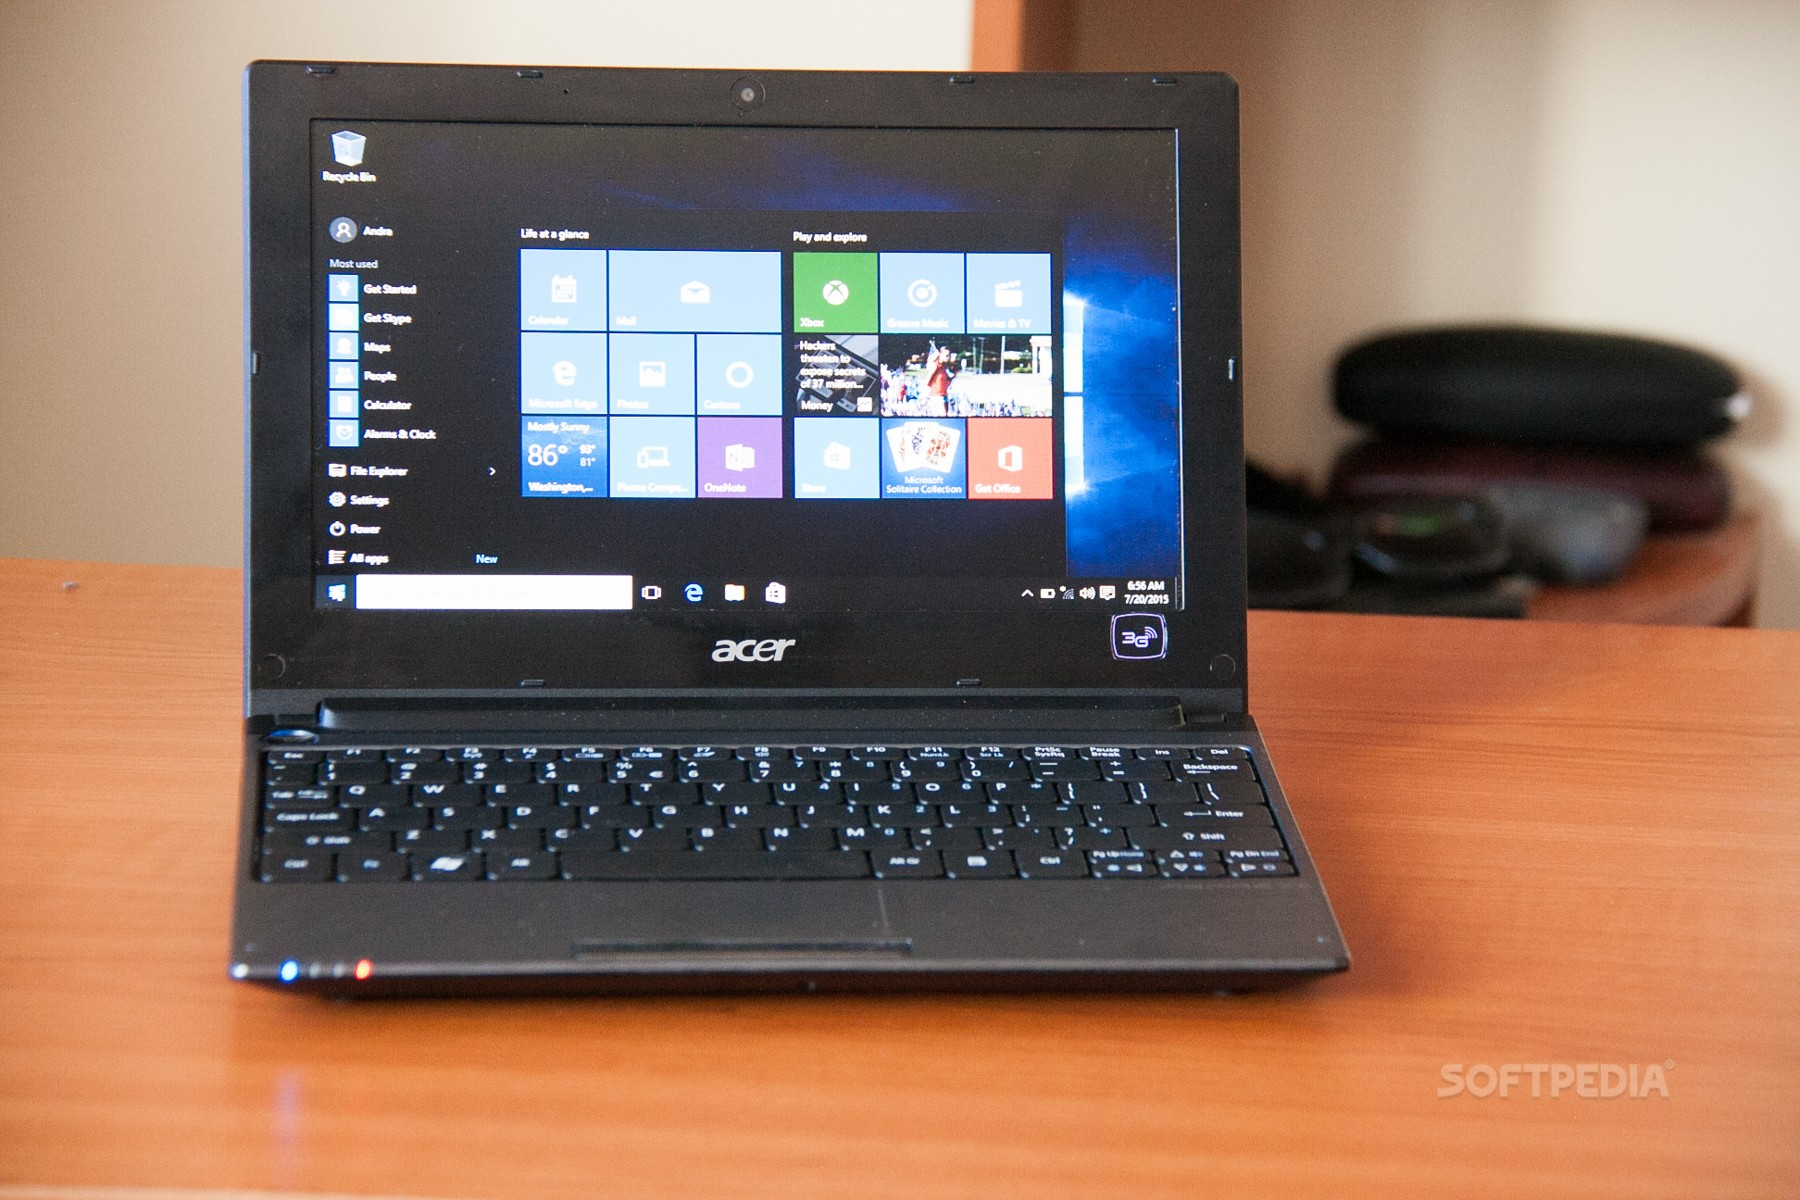 Installing windows 10 on a 7-year-old acer aspire one: flawless.